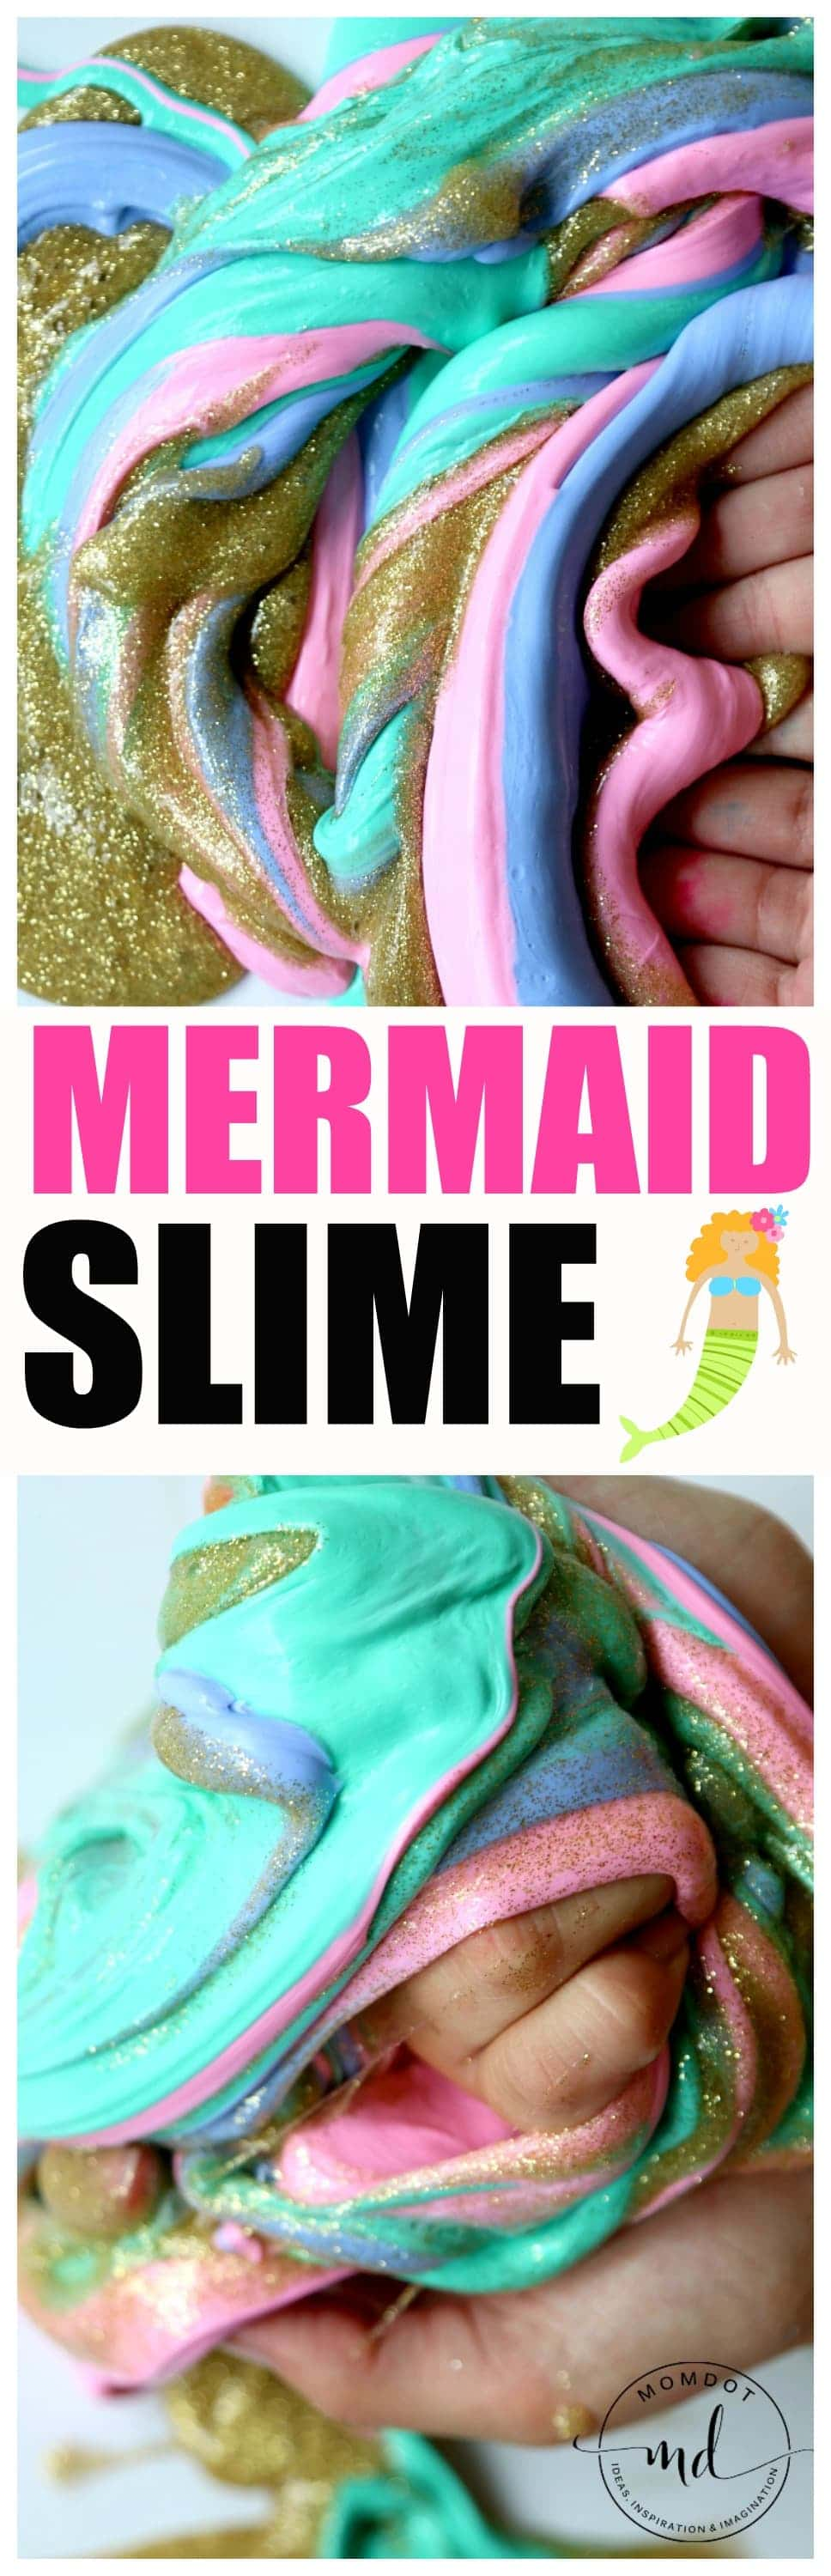 Mermaid Fluffy Slime Recipe, Make gorgeous glitter slime mixed with beautiful colors, like a mermaid!